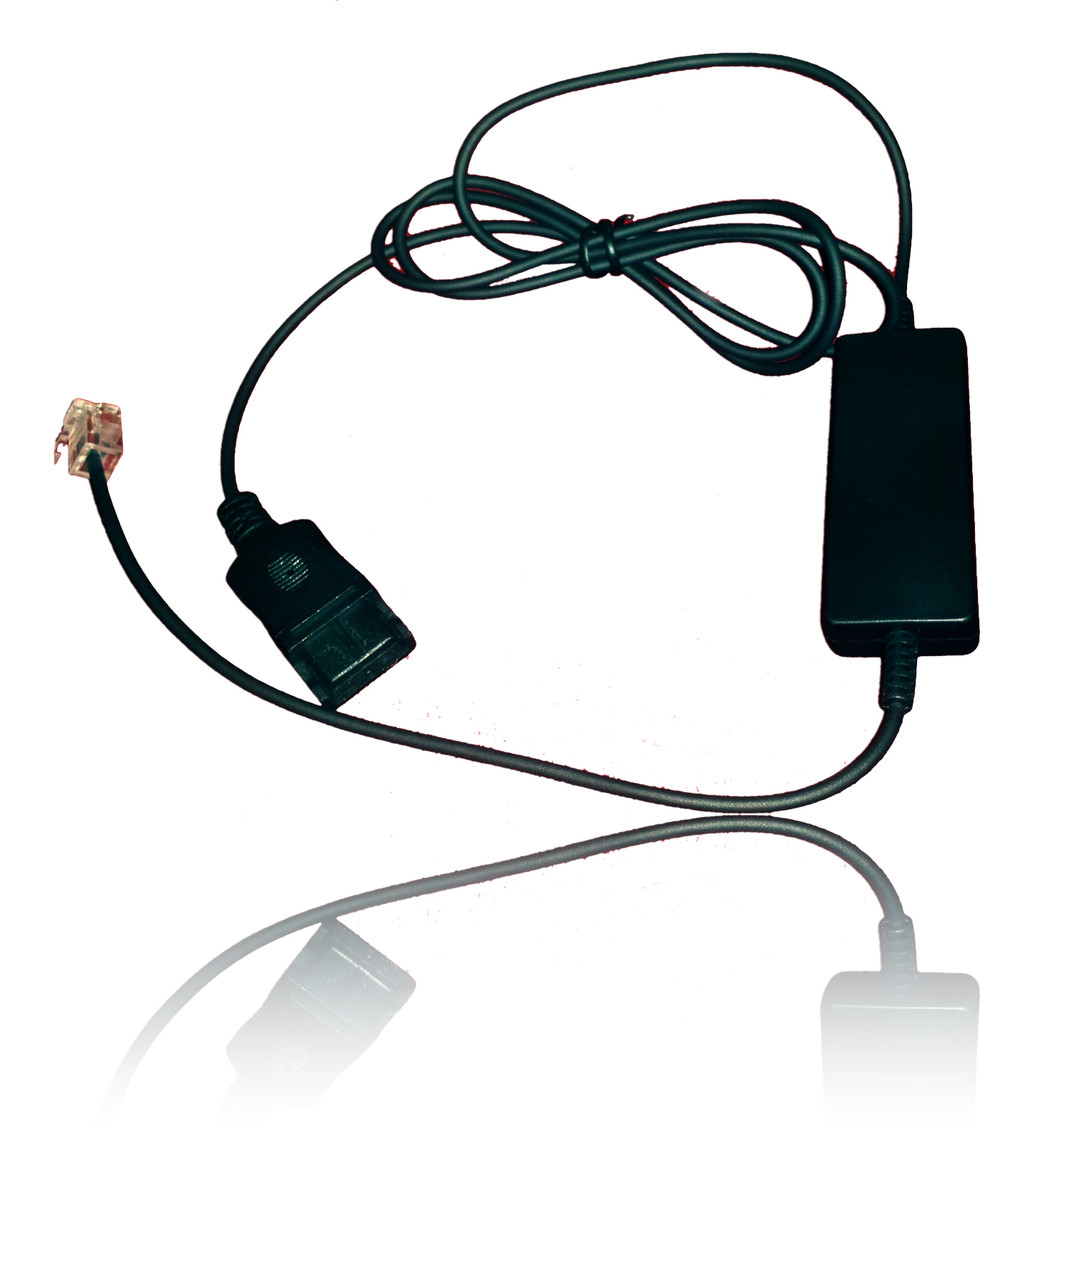 Intelligent Cord (4ft) for Plantronics Headsets | 10 pack special |  Compatible with Mitel, NEC, Aastra, Nortel, Shortel, Allworx, Cisco